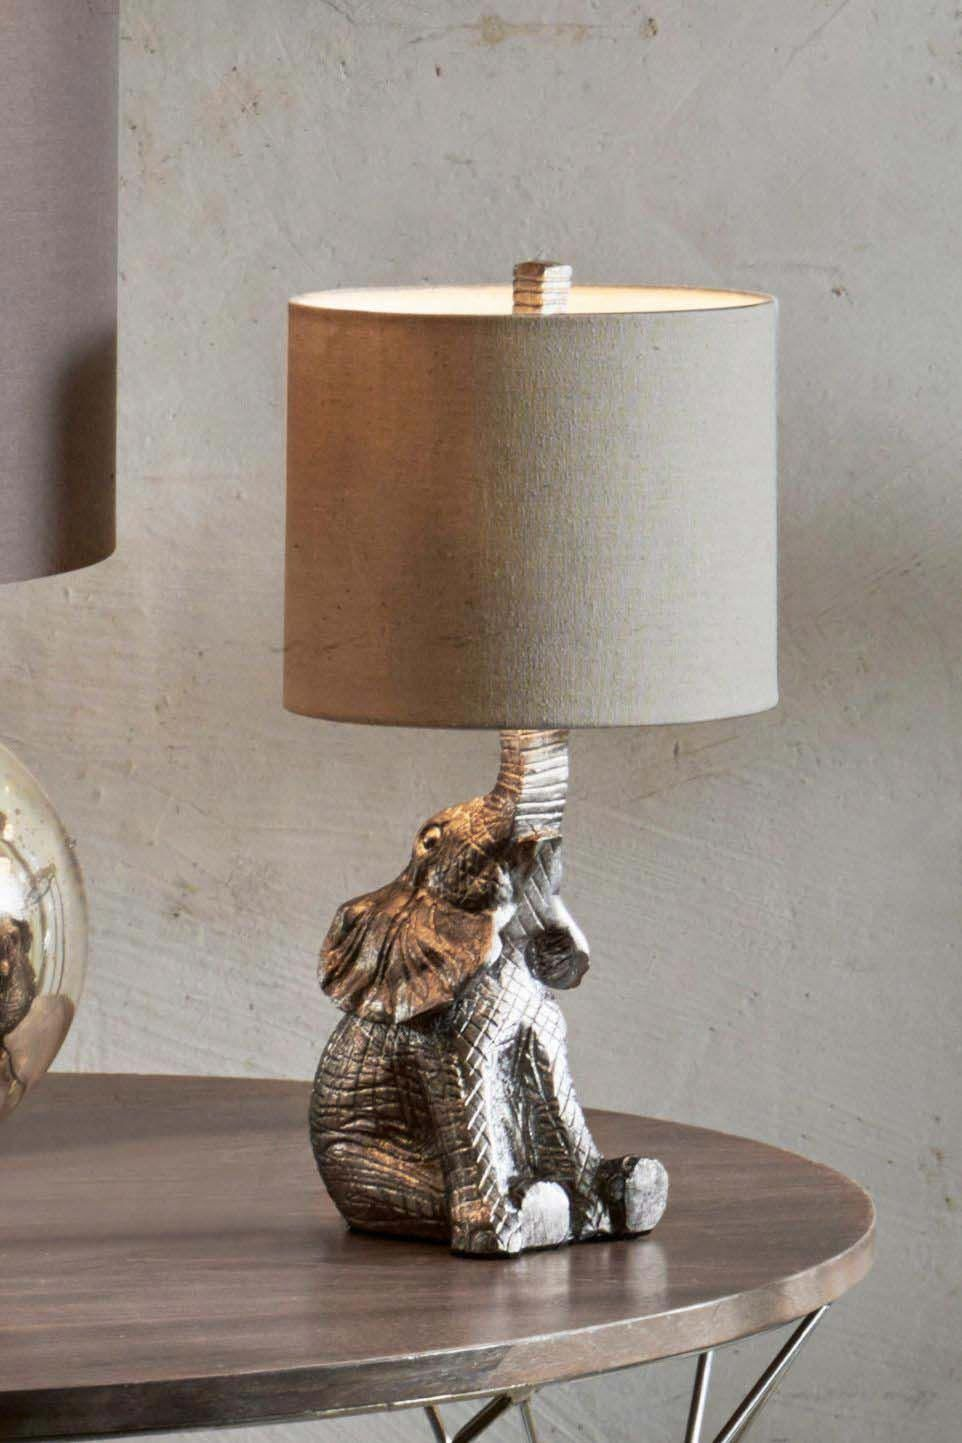 Next Elephant Table Lamp Silver Lamps In 2020 Elephant Table Lamp Elephant Home Decor Elephant Table